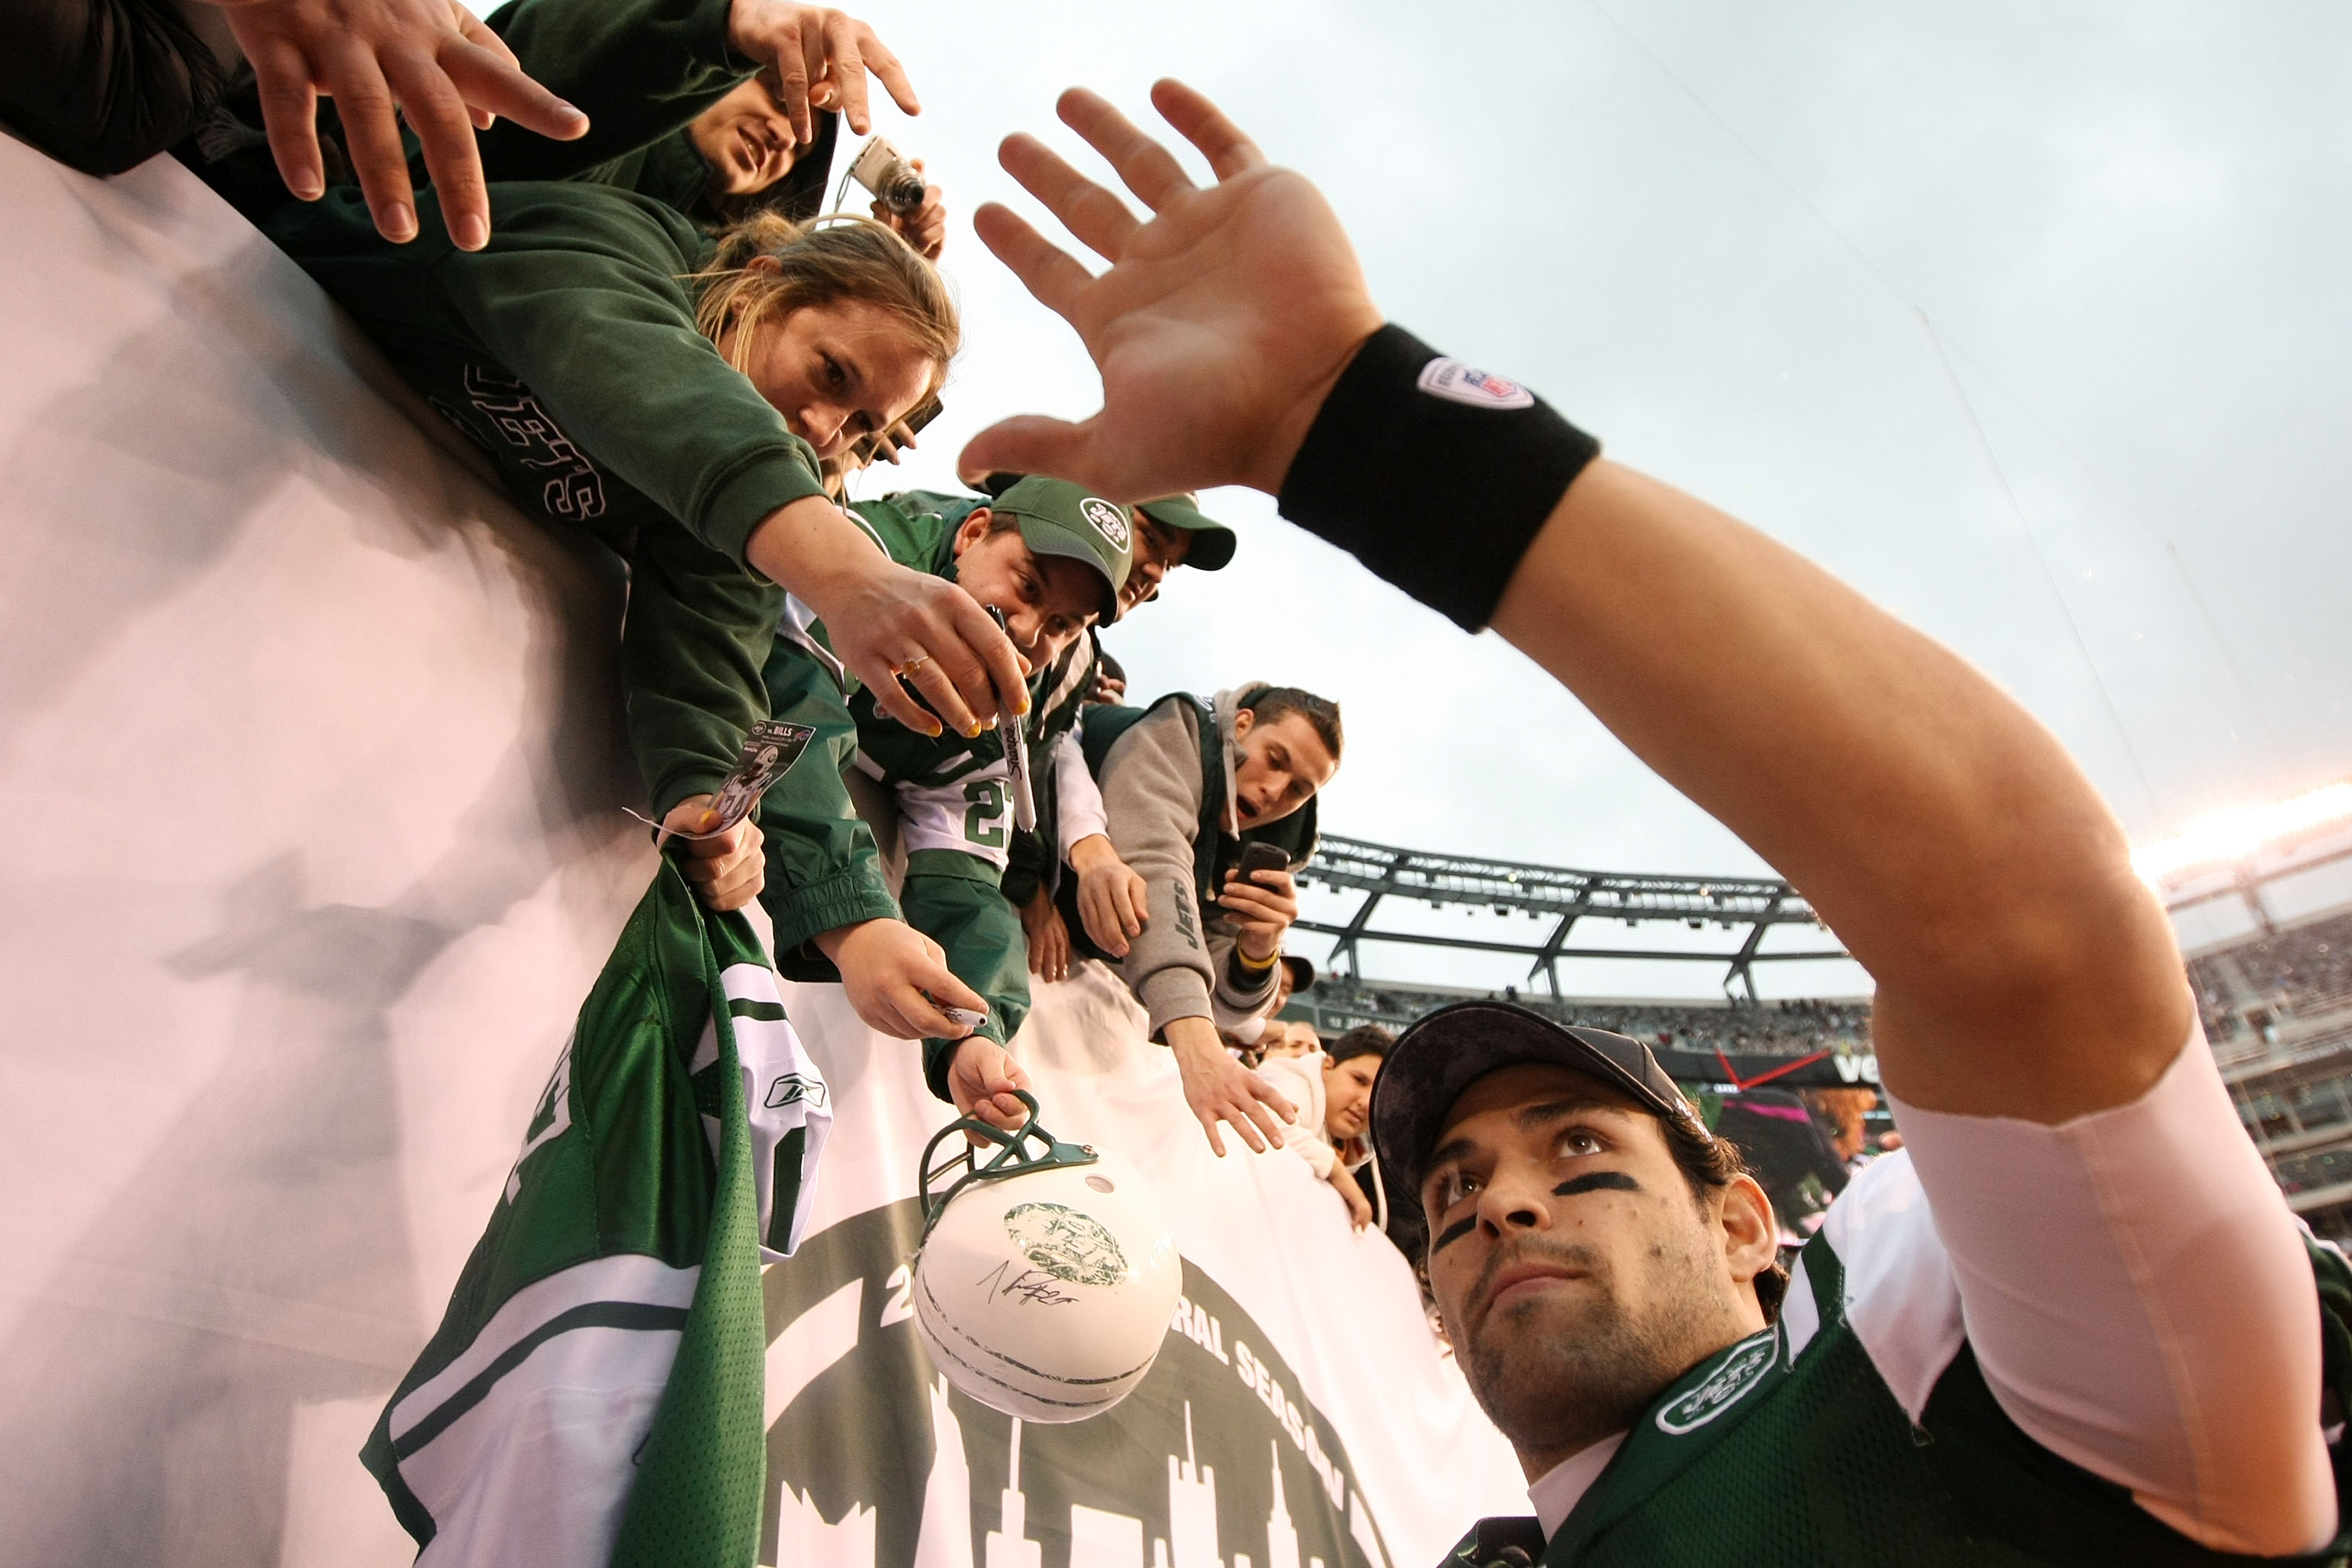 EAST RUTHERFORD, NJ - JANUARY 02:  Quarterback Mark Sanchez #6 of the New York Jets celebrates with fans after they defeated the Buffalo Bills 38 to 7 at New Meadowlands Stadium on January 2, 2011 in East Rutherford, New Jersey.  (Photo by Al Bello/Getty